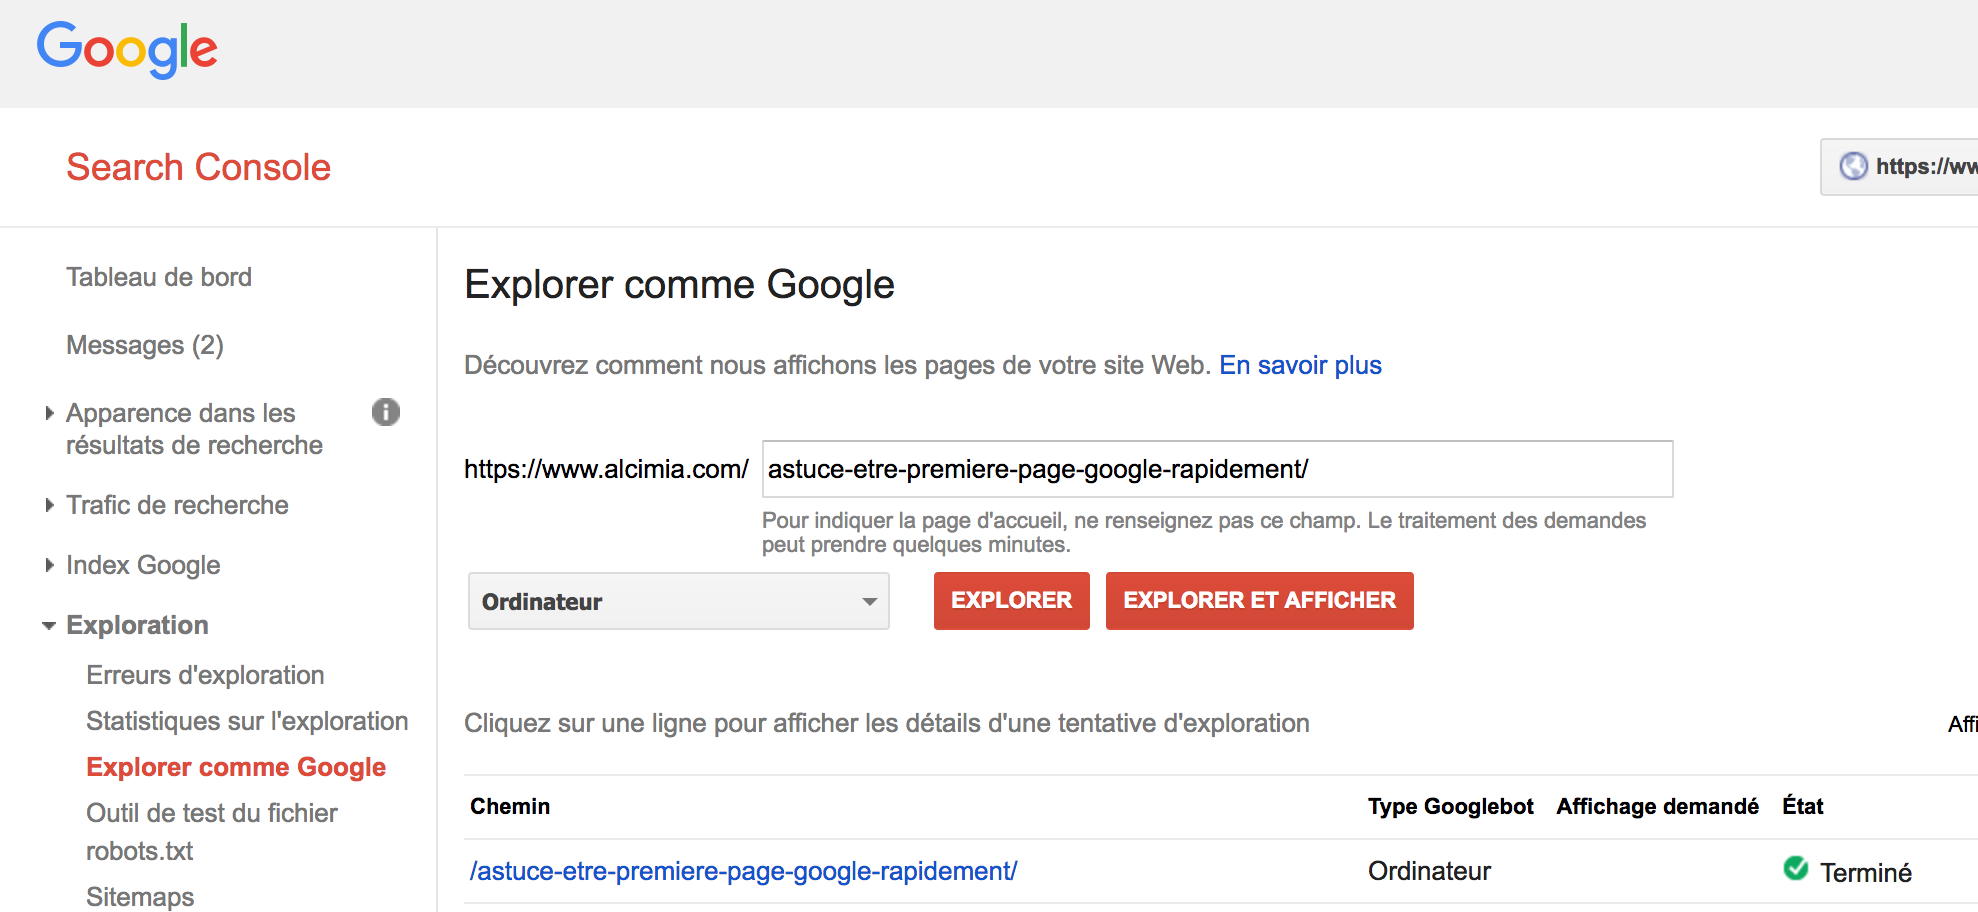 Astuce comment tre en premi re page google rapidement for Cle chambery